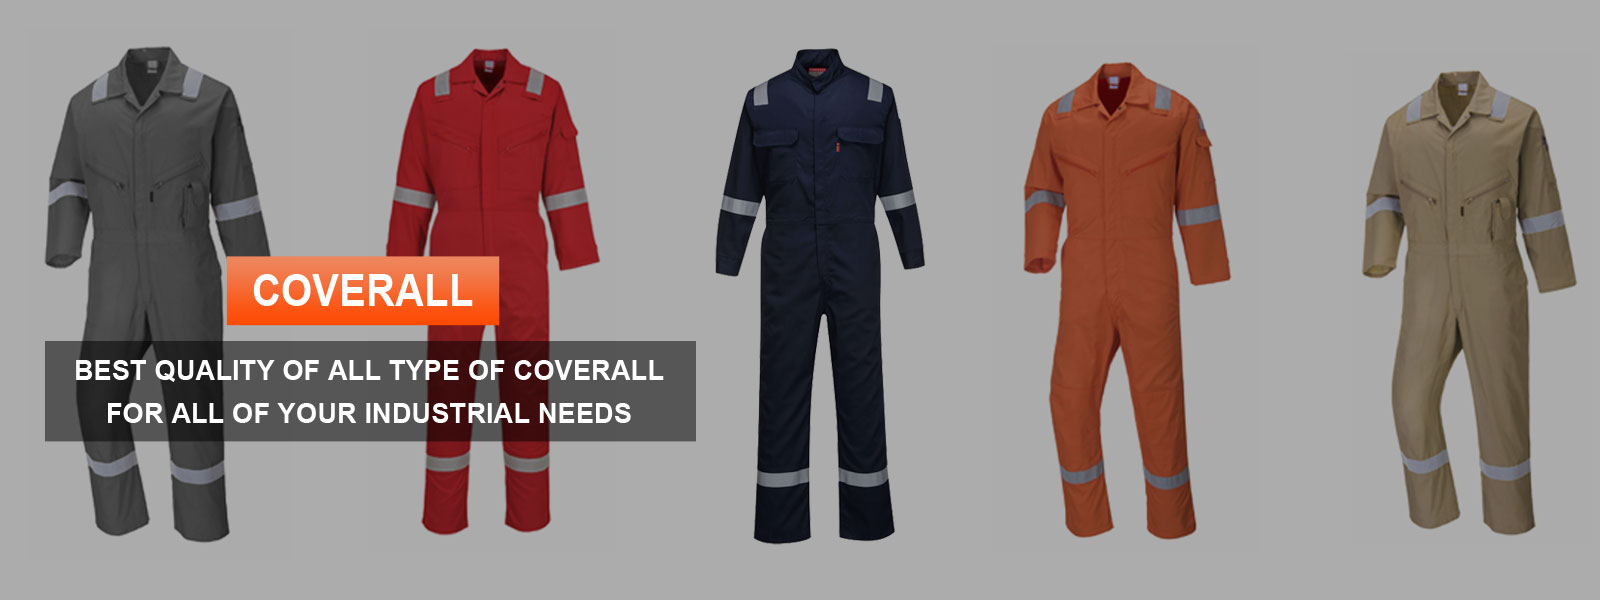 Coverall Manufacturers in Bangladesh